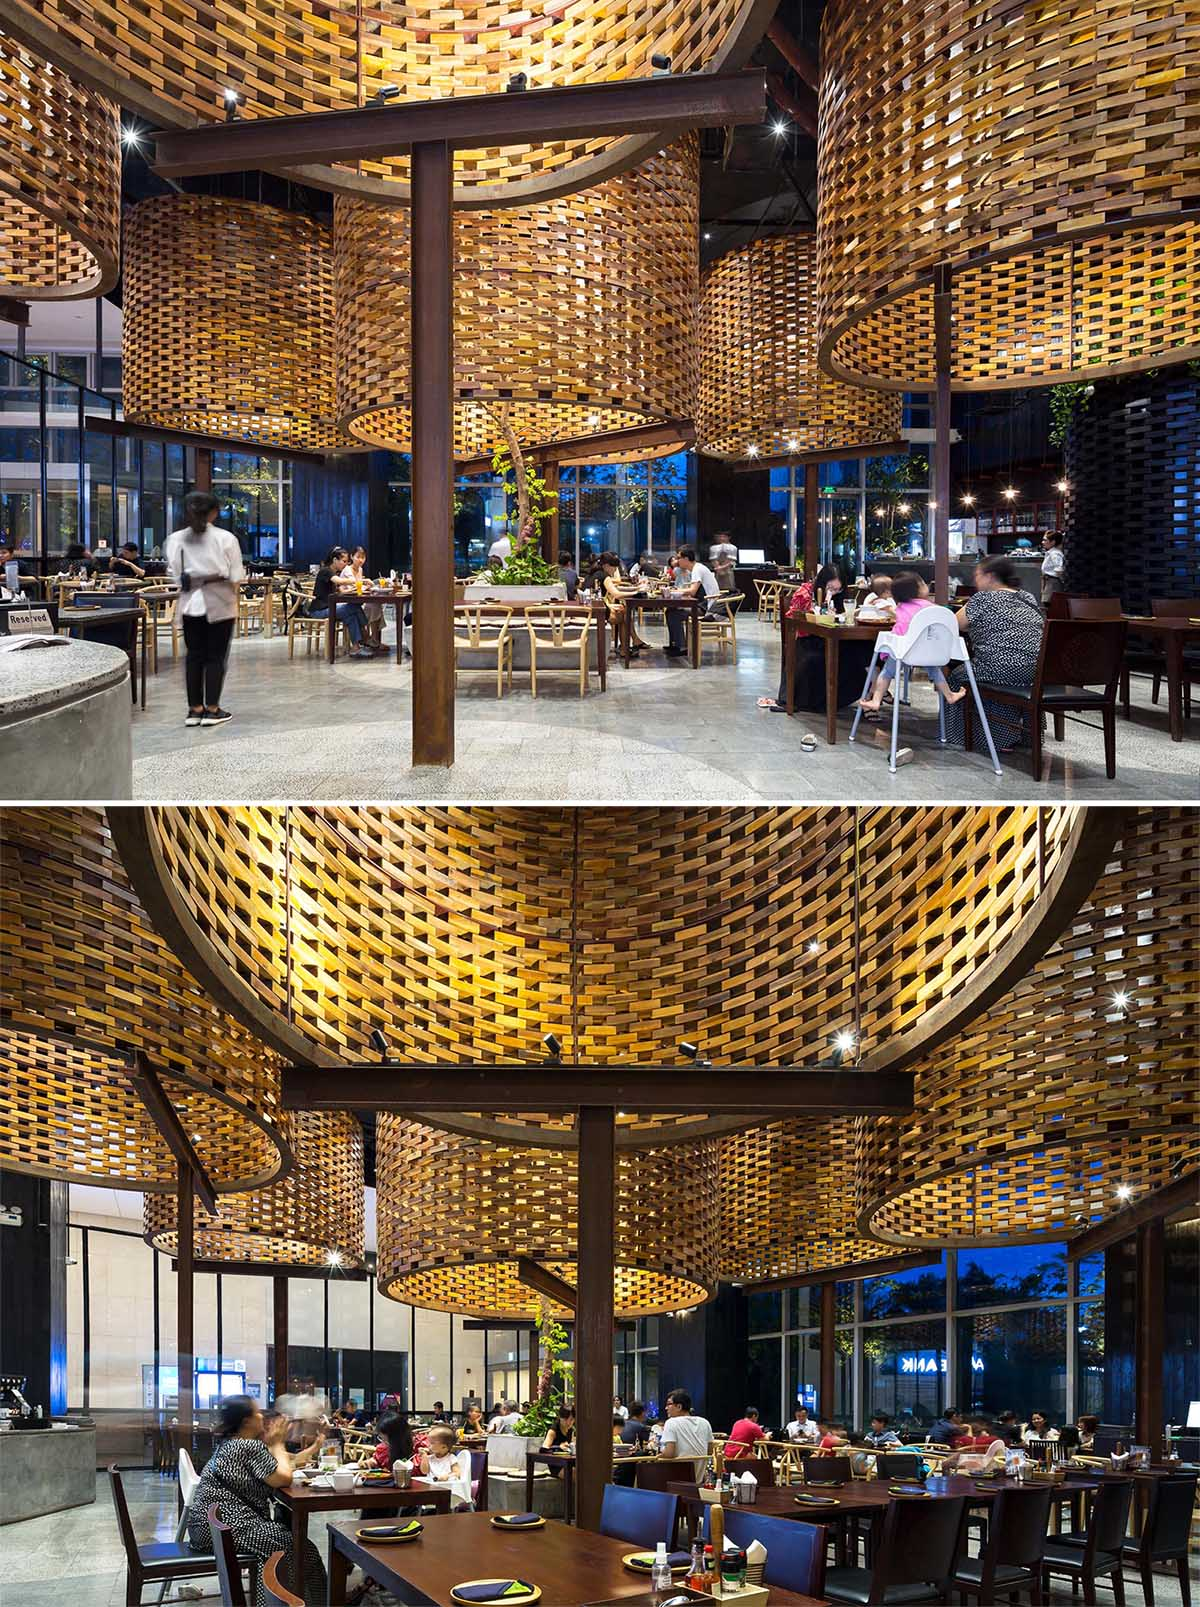 A modern restaurant interior with large sculptural cylinders made from wood bricks.